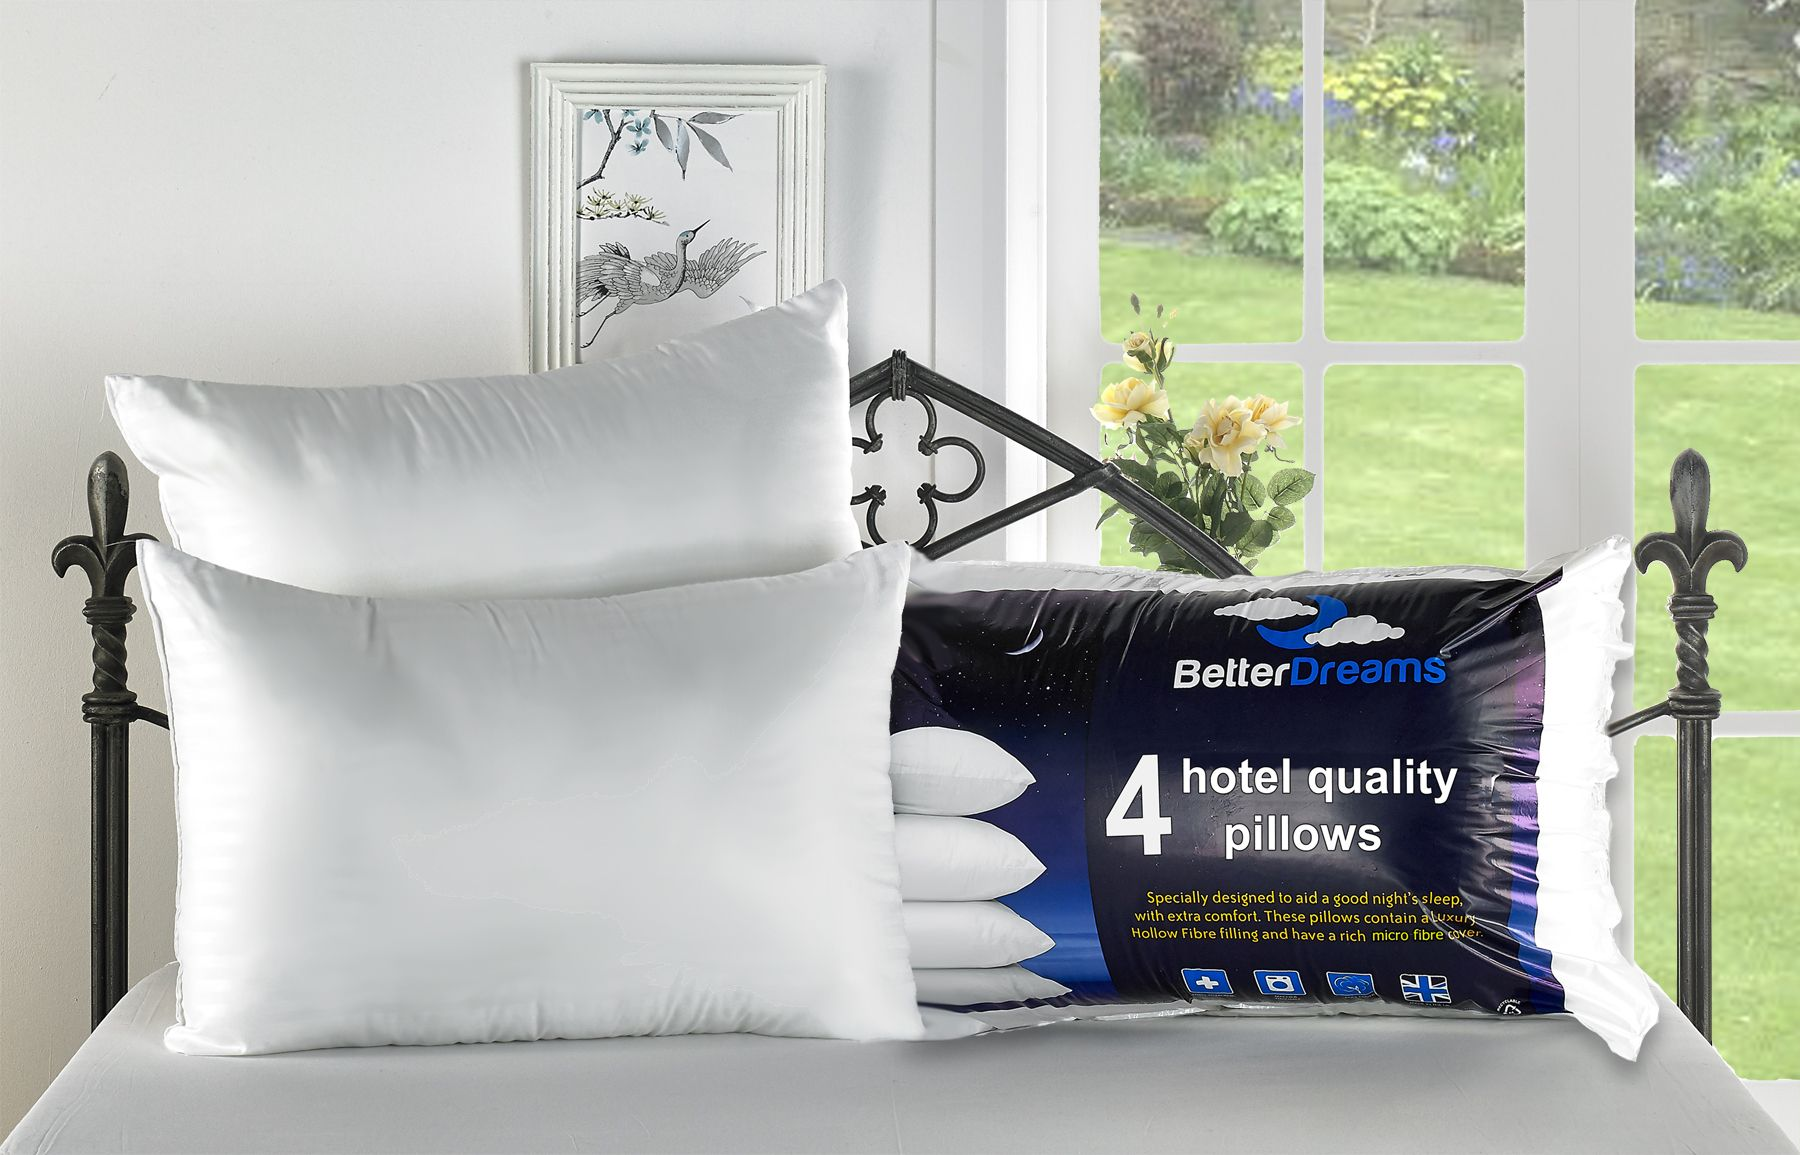 Egyptian Box Pillow High Quality Hollow Fibre Filling Comfort Cotton Pack of 3